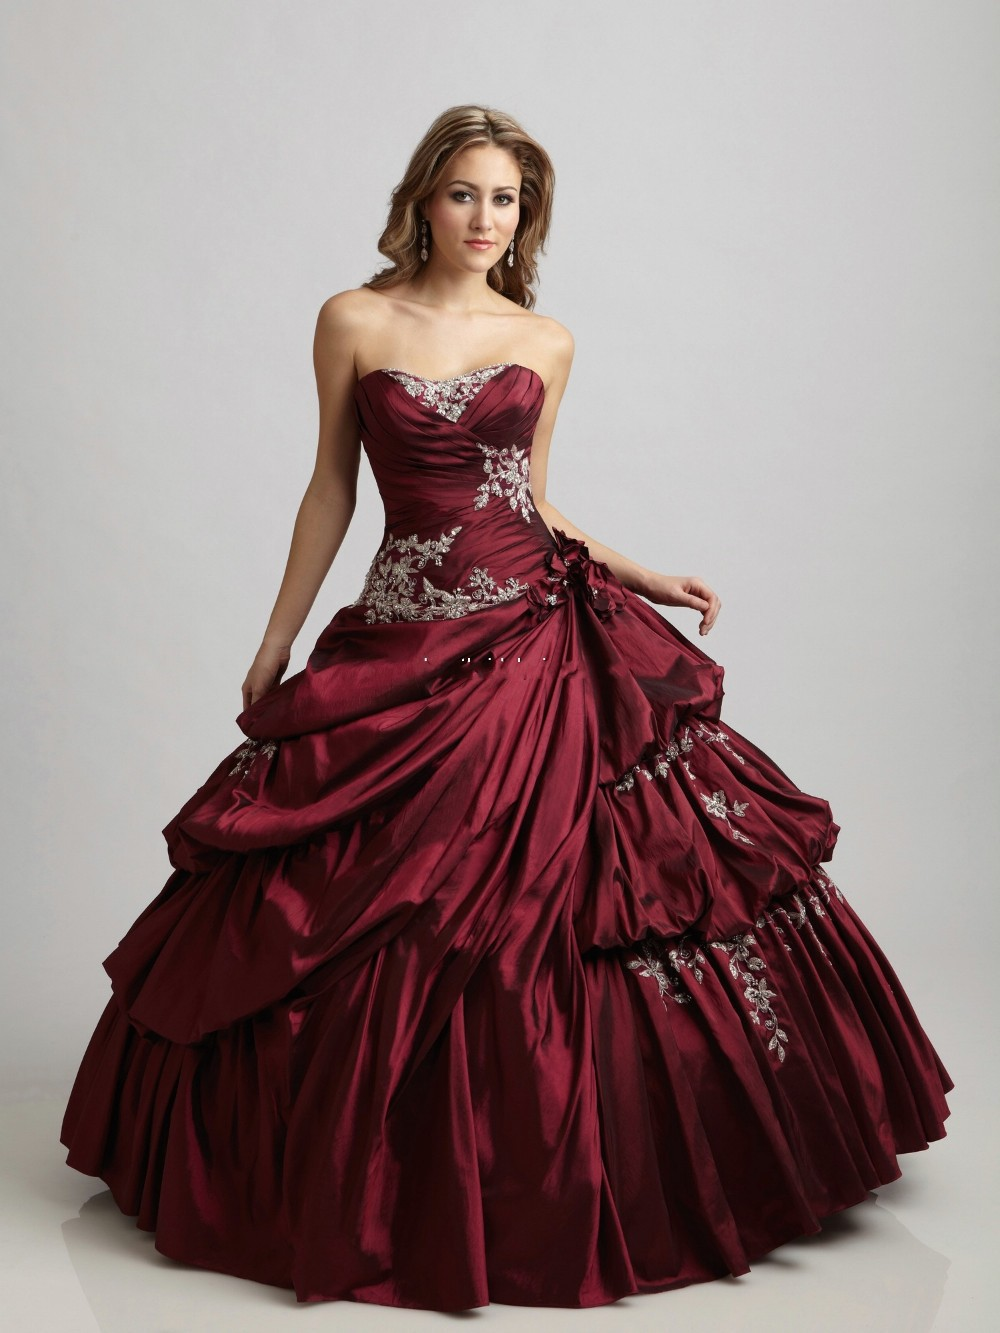 Compare Prices on Victorian Style Evening Dress- Online Shopping ...